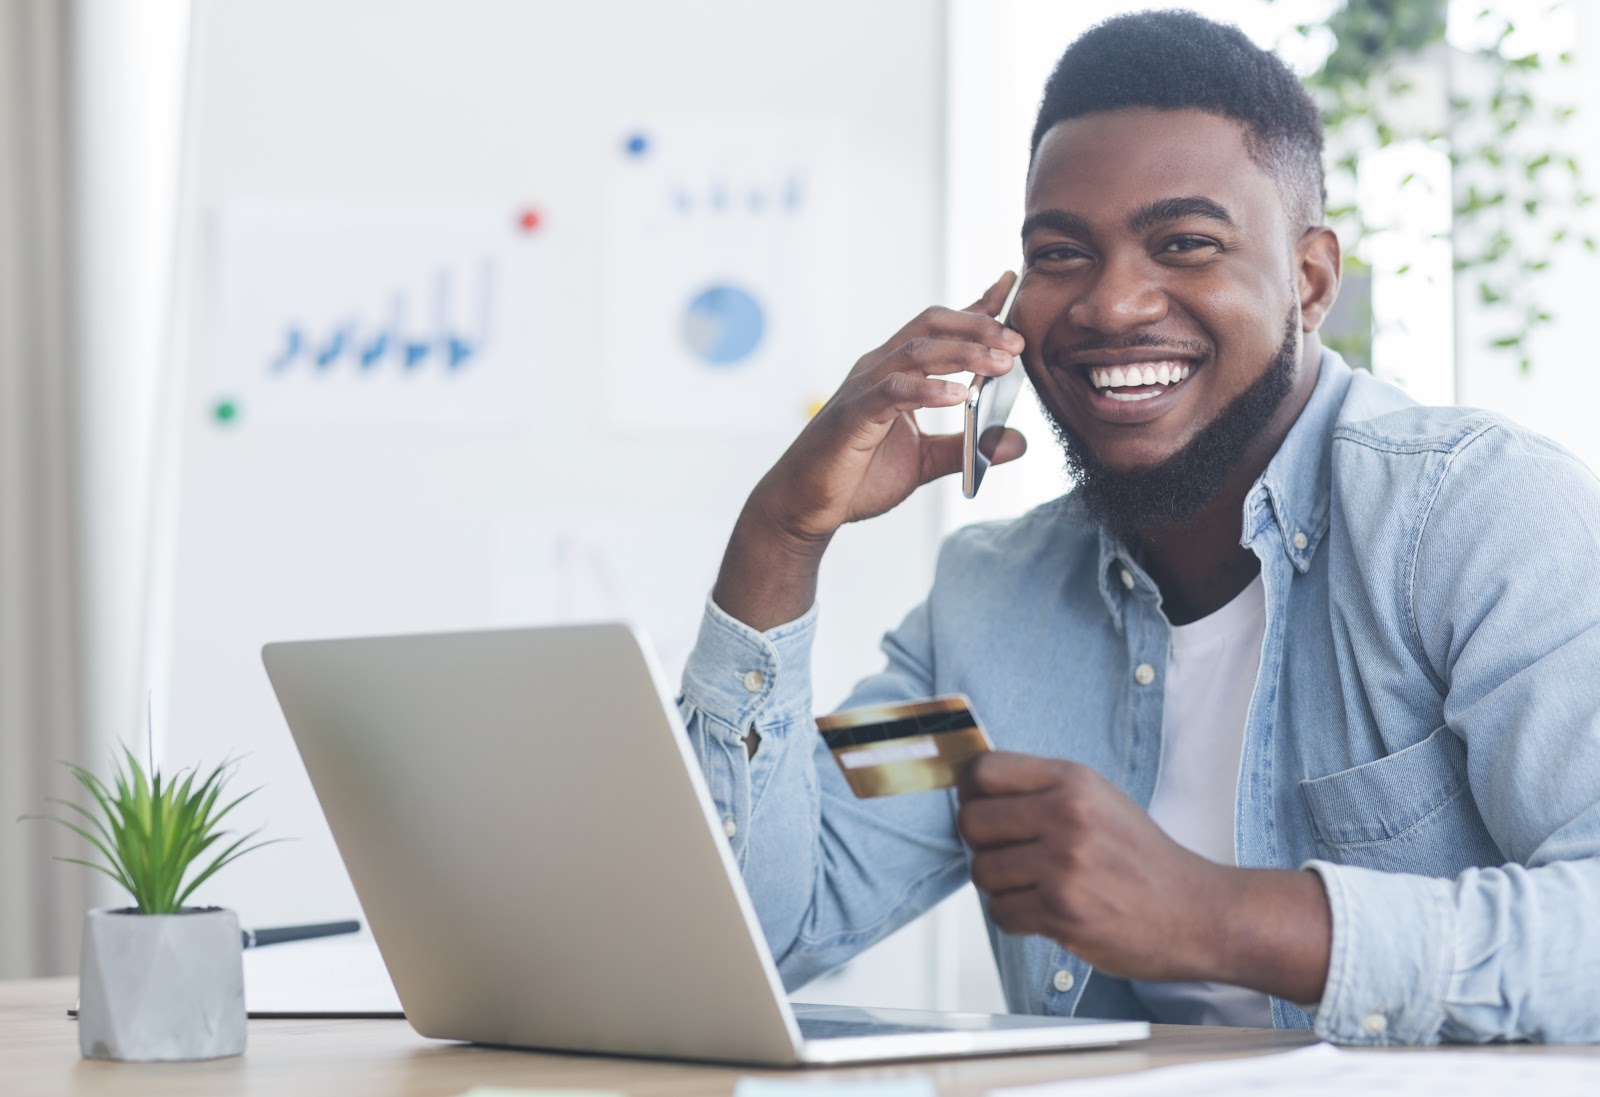 Smiling man on phone while using his credit card to shop online